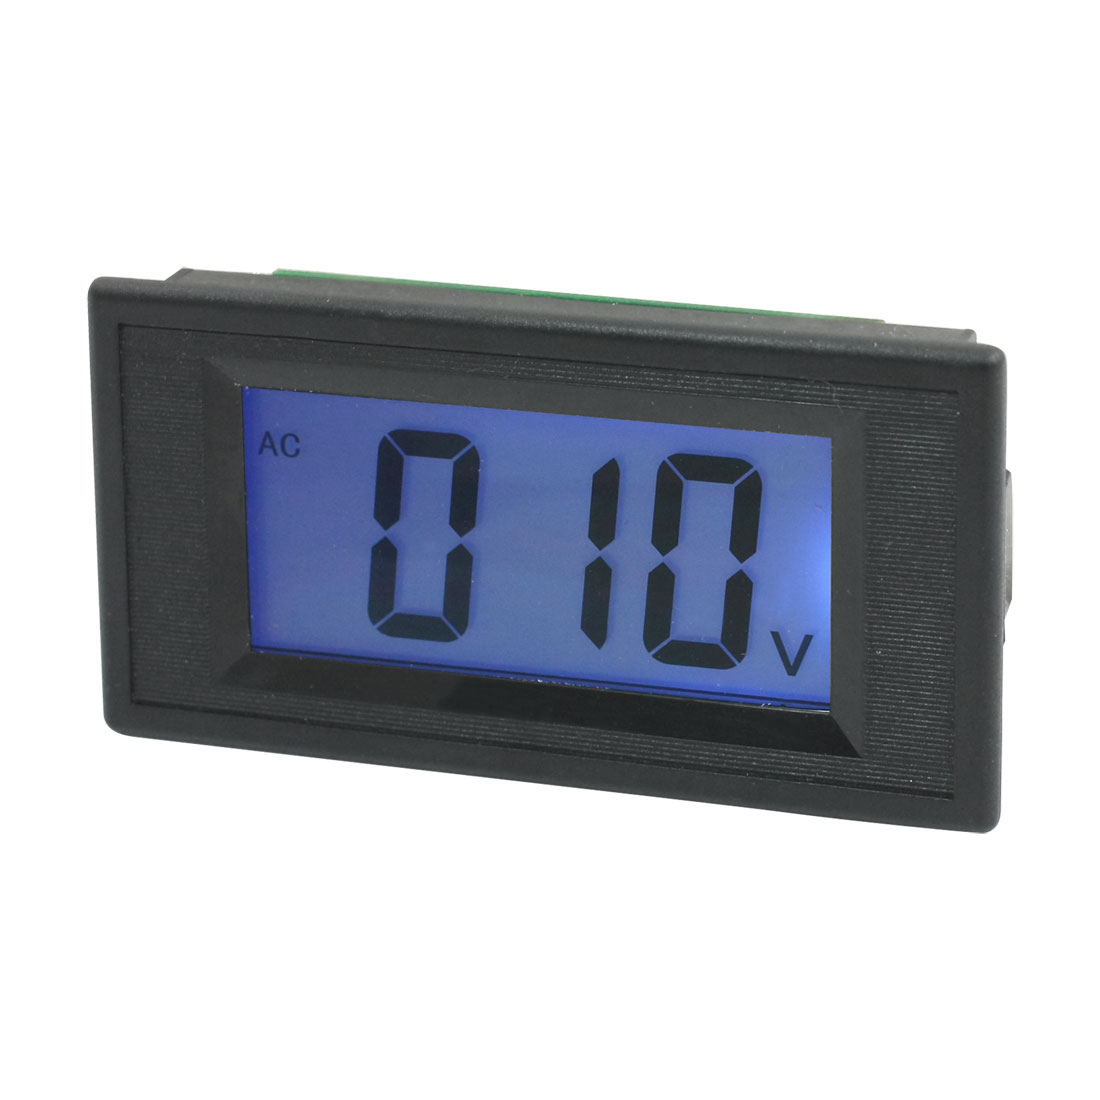 AC-80-500V-Blue-LCD-Display-Voltmeter-Digital-Panel-Voltage-Meter